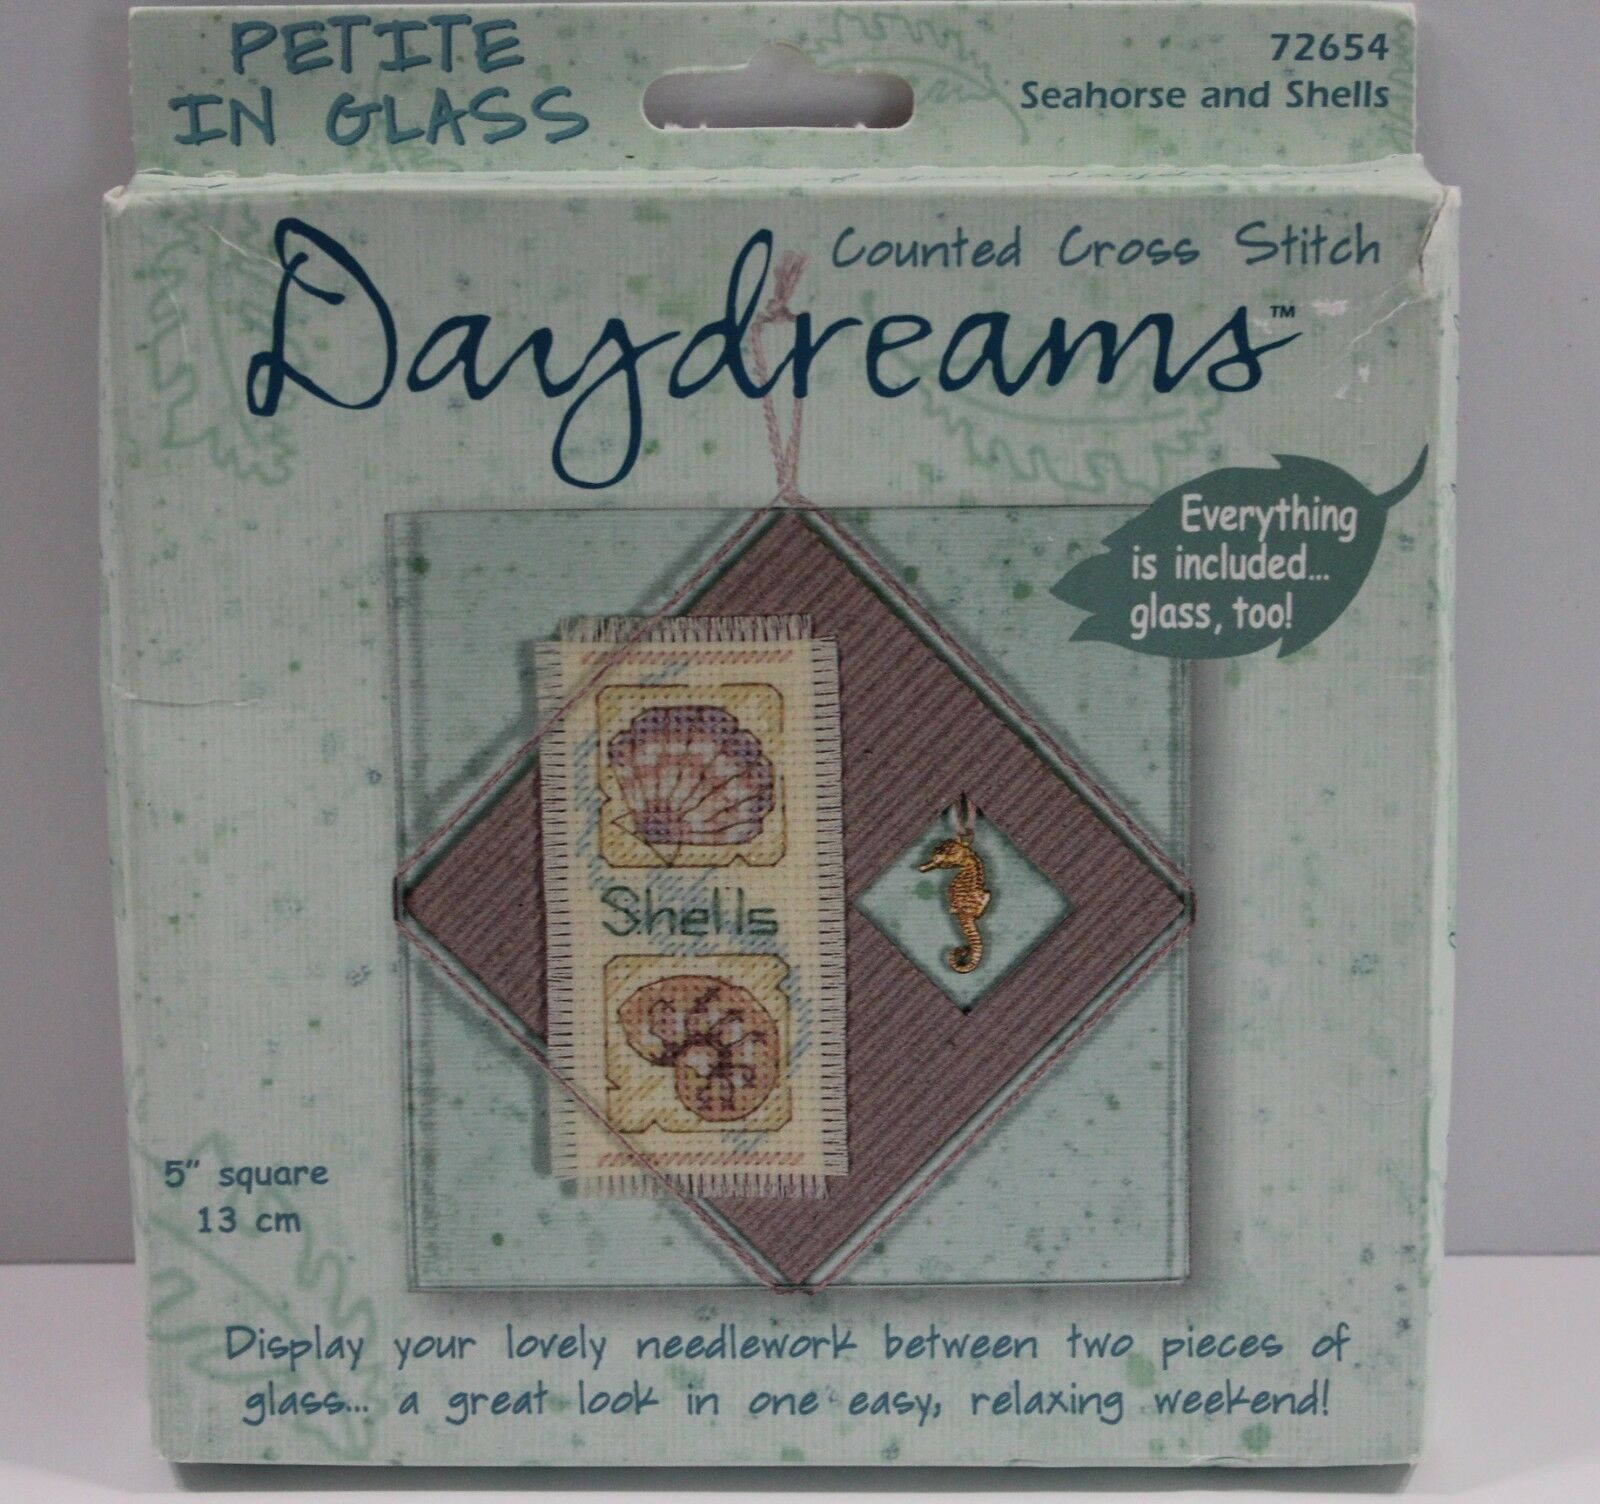 Primary image for Daydreams Counted Cross Stitch Seahorse and Shells Between Glass Kit